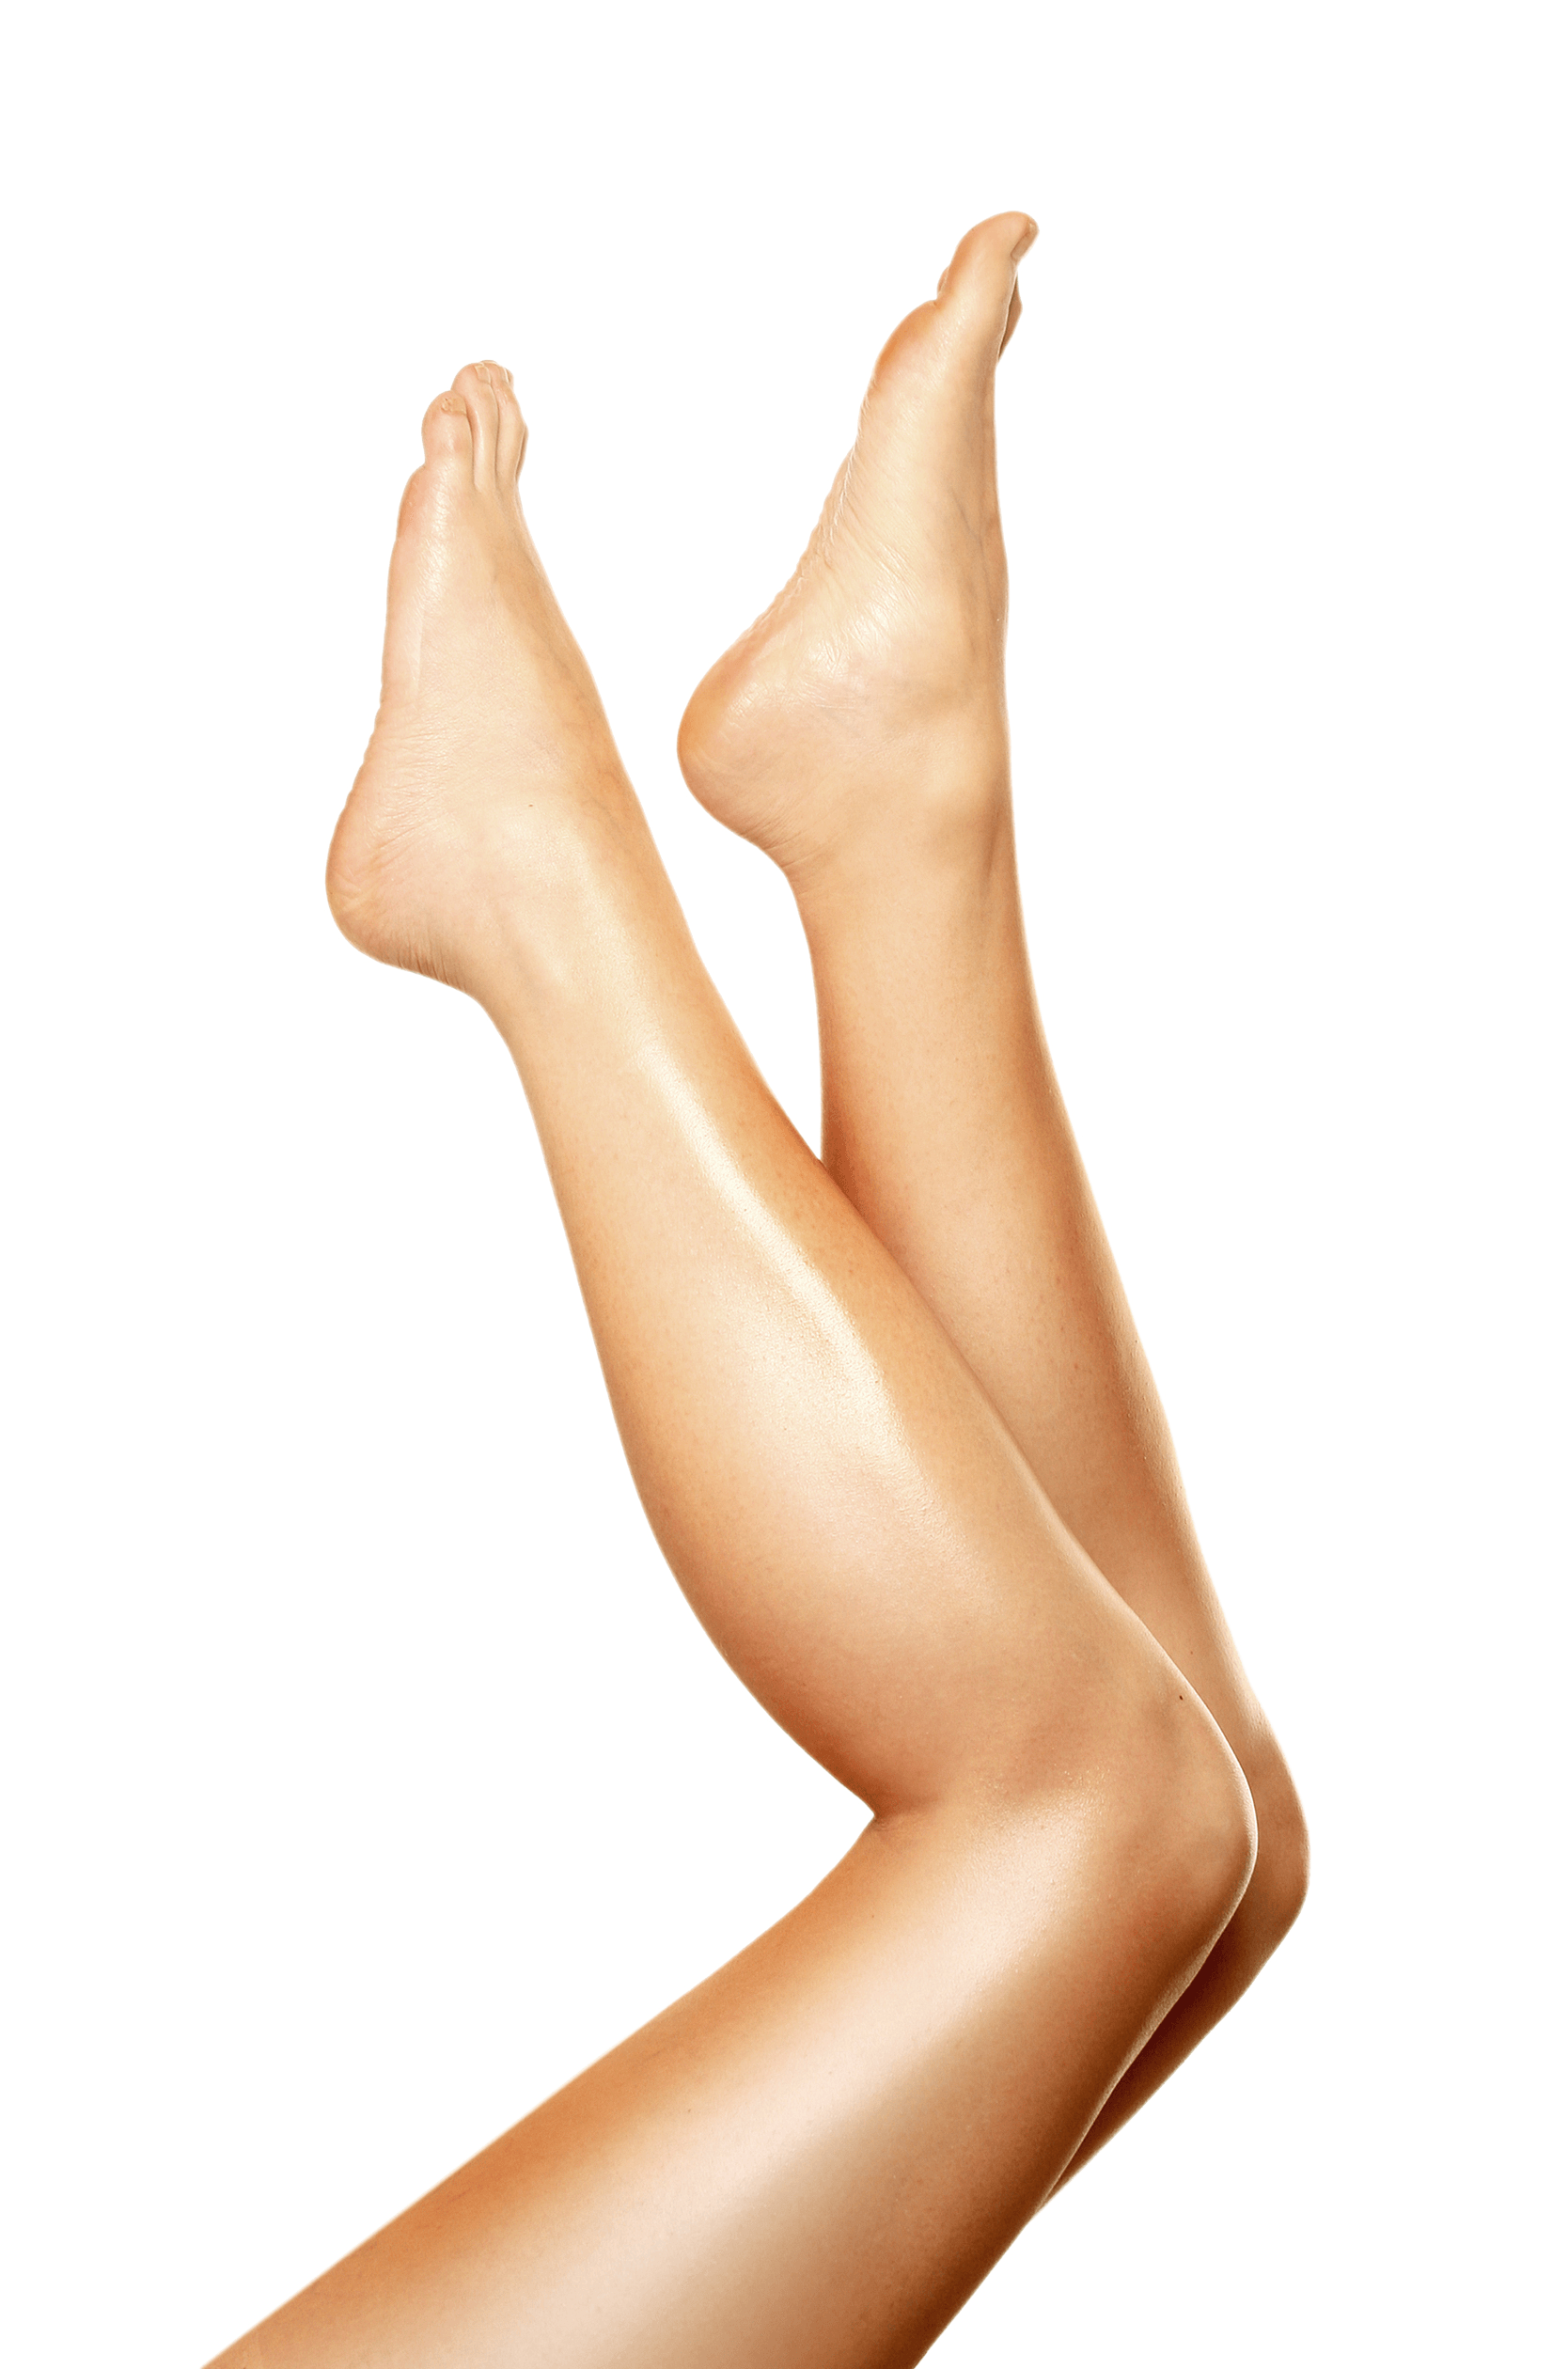 Png feet. Isolated legs transparent stickpng